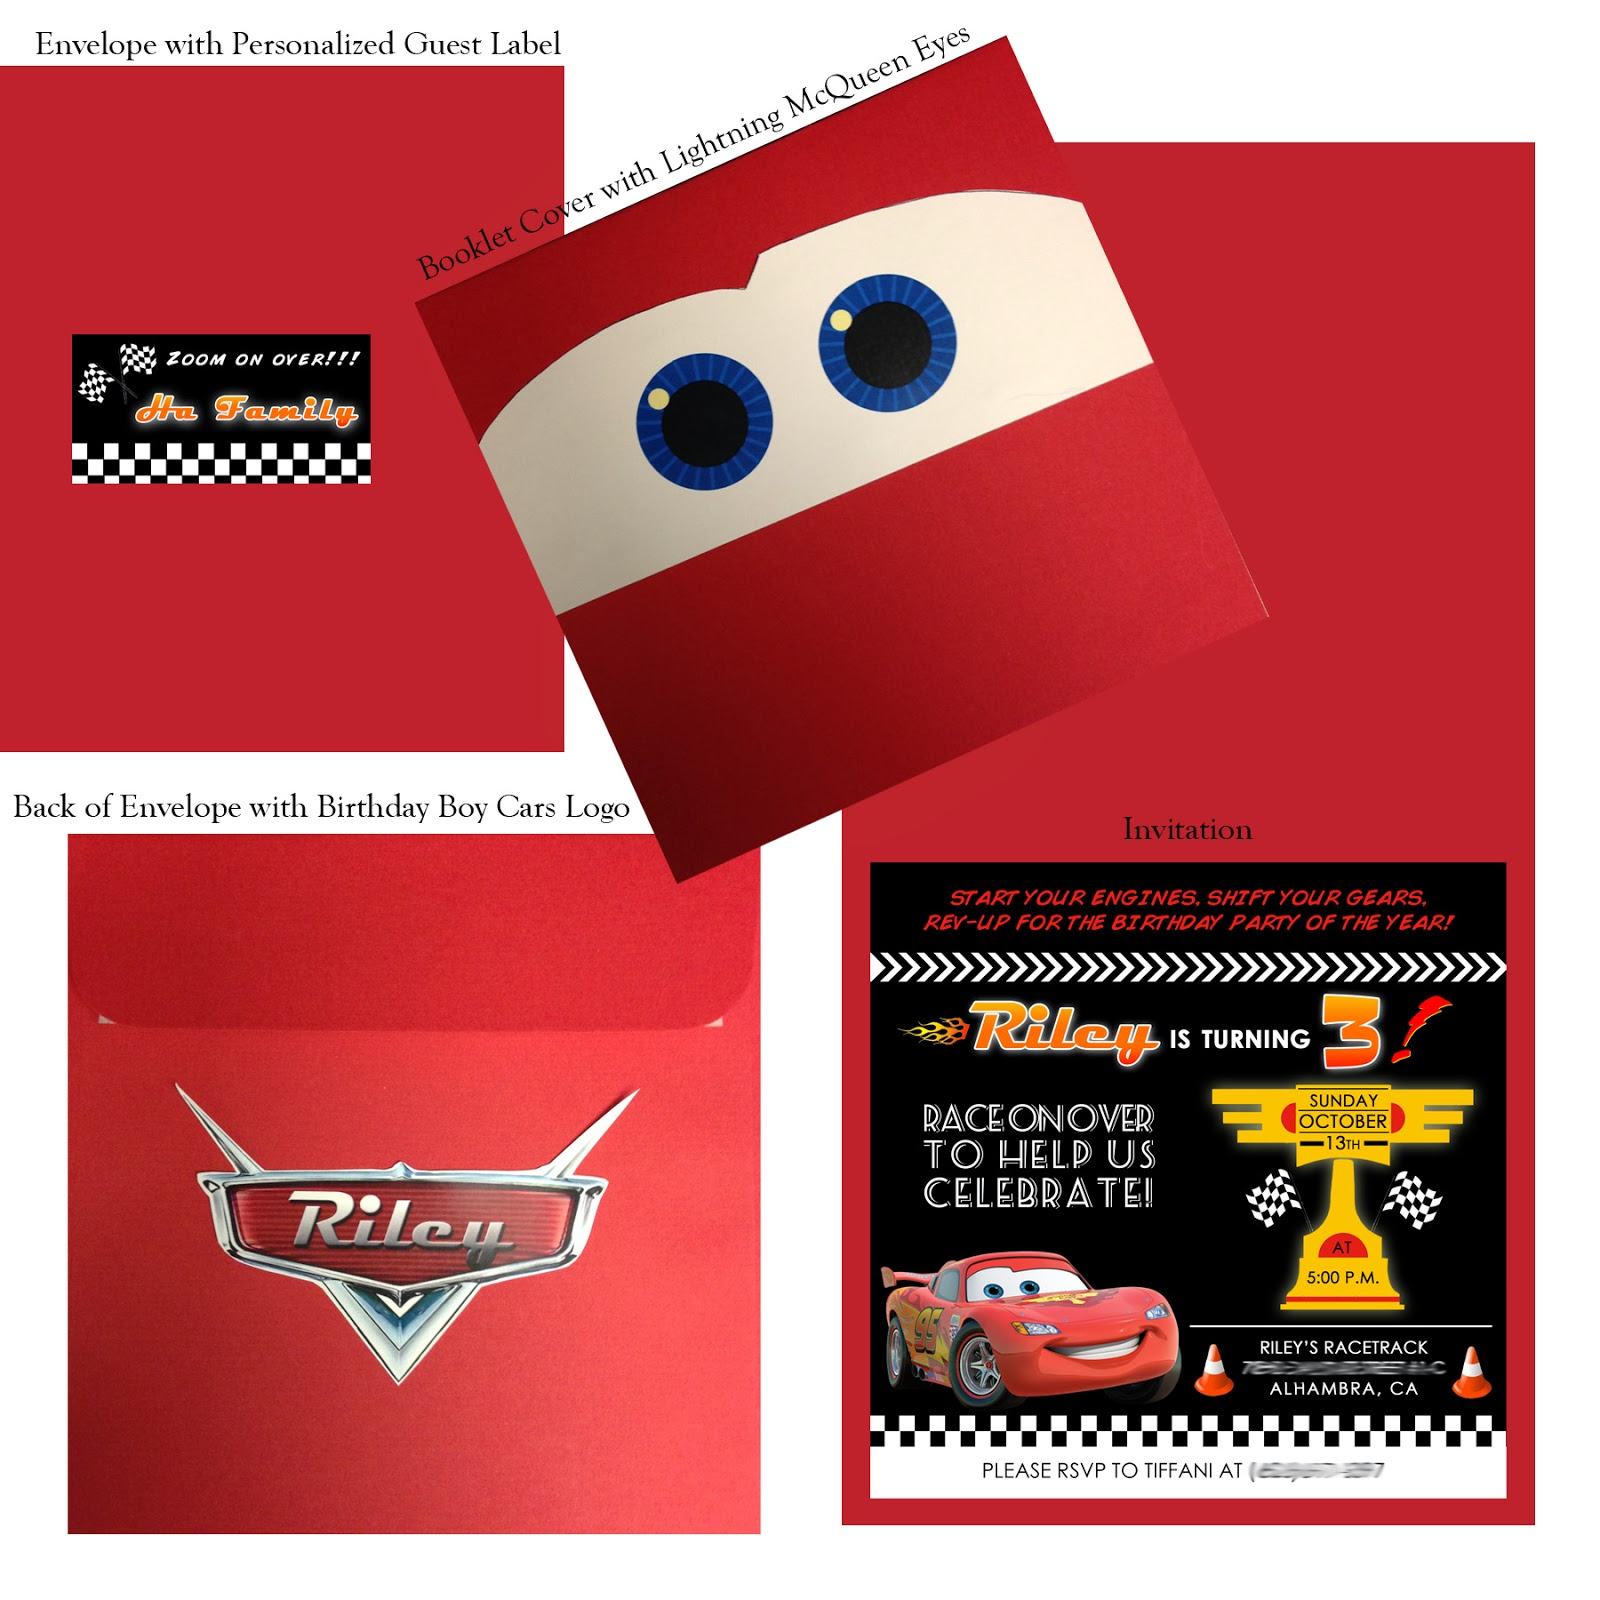 la design boutique a birthday party on the fast lane it was enclosed in a booklet fold that featured lightning mcqueen s eyes on the front the invitation was then placed in a racing red envelope